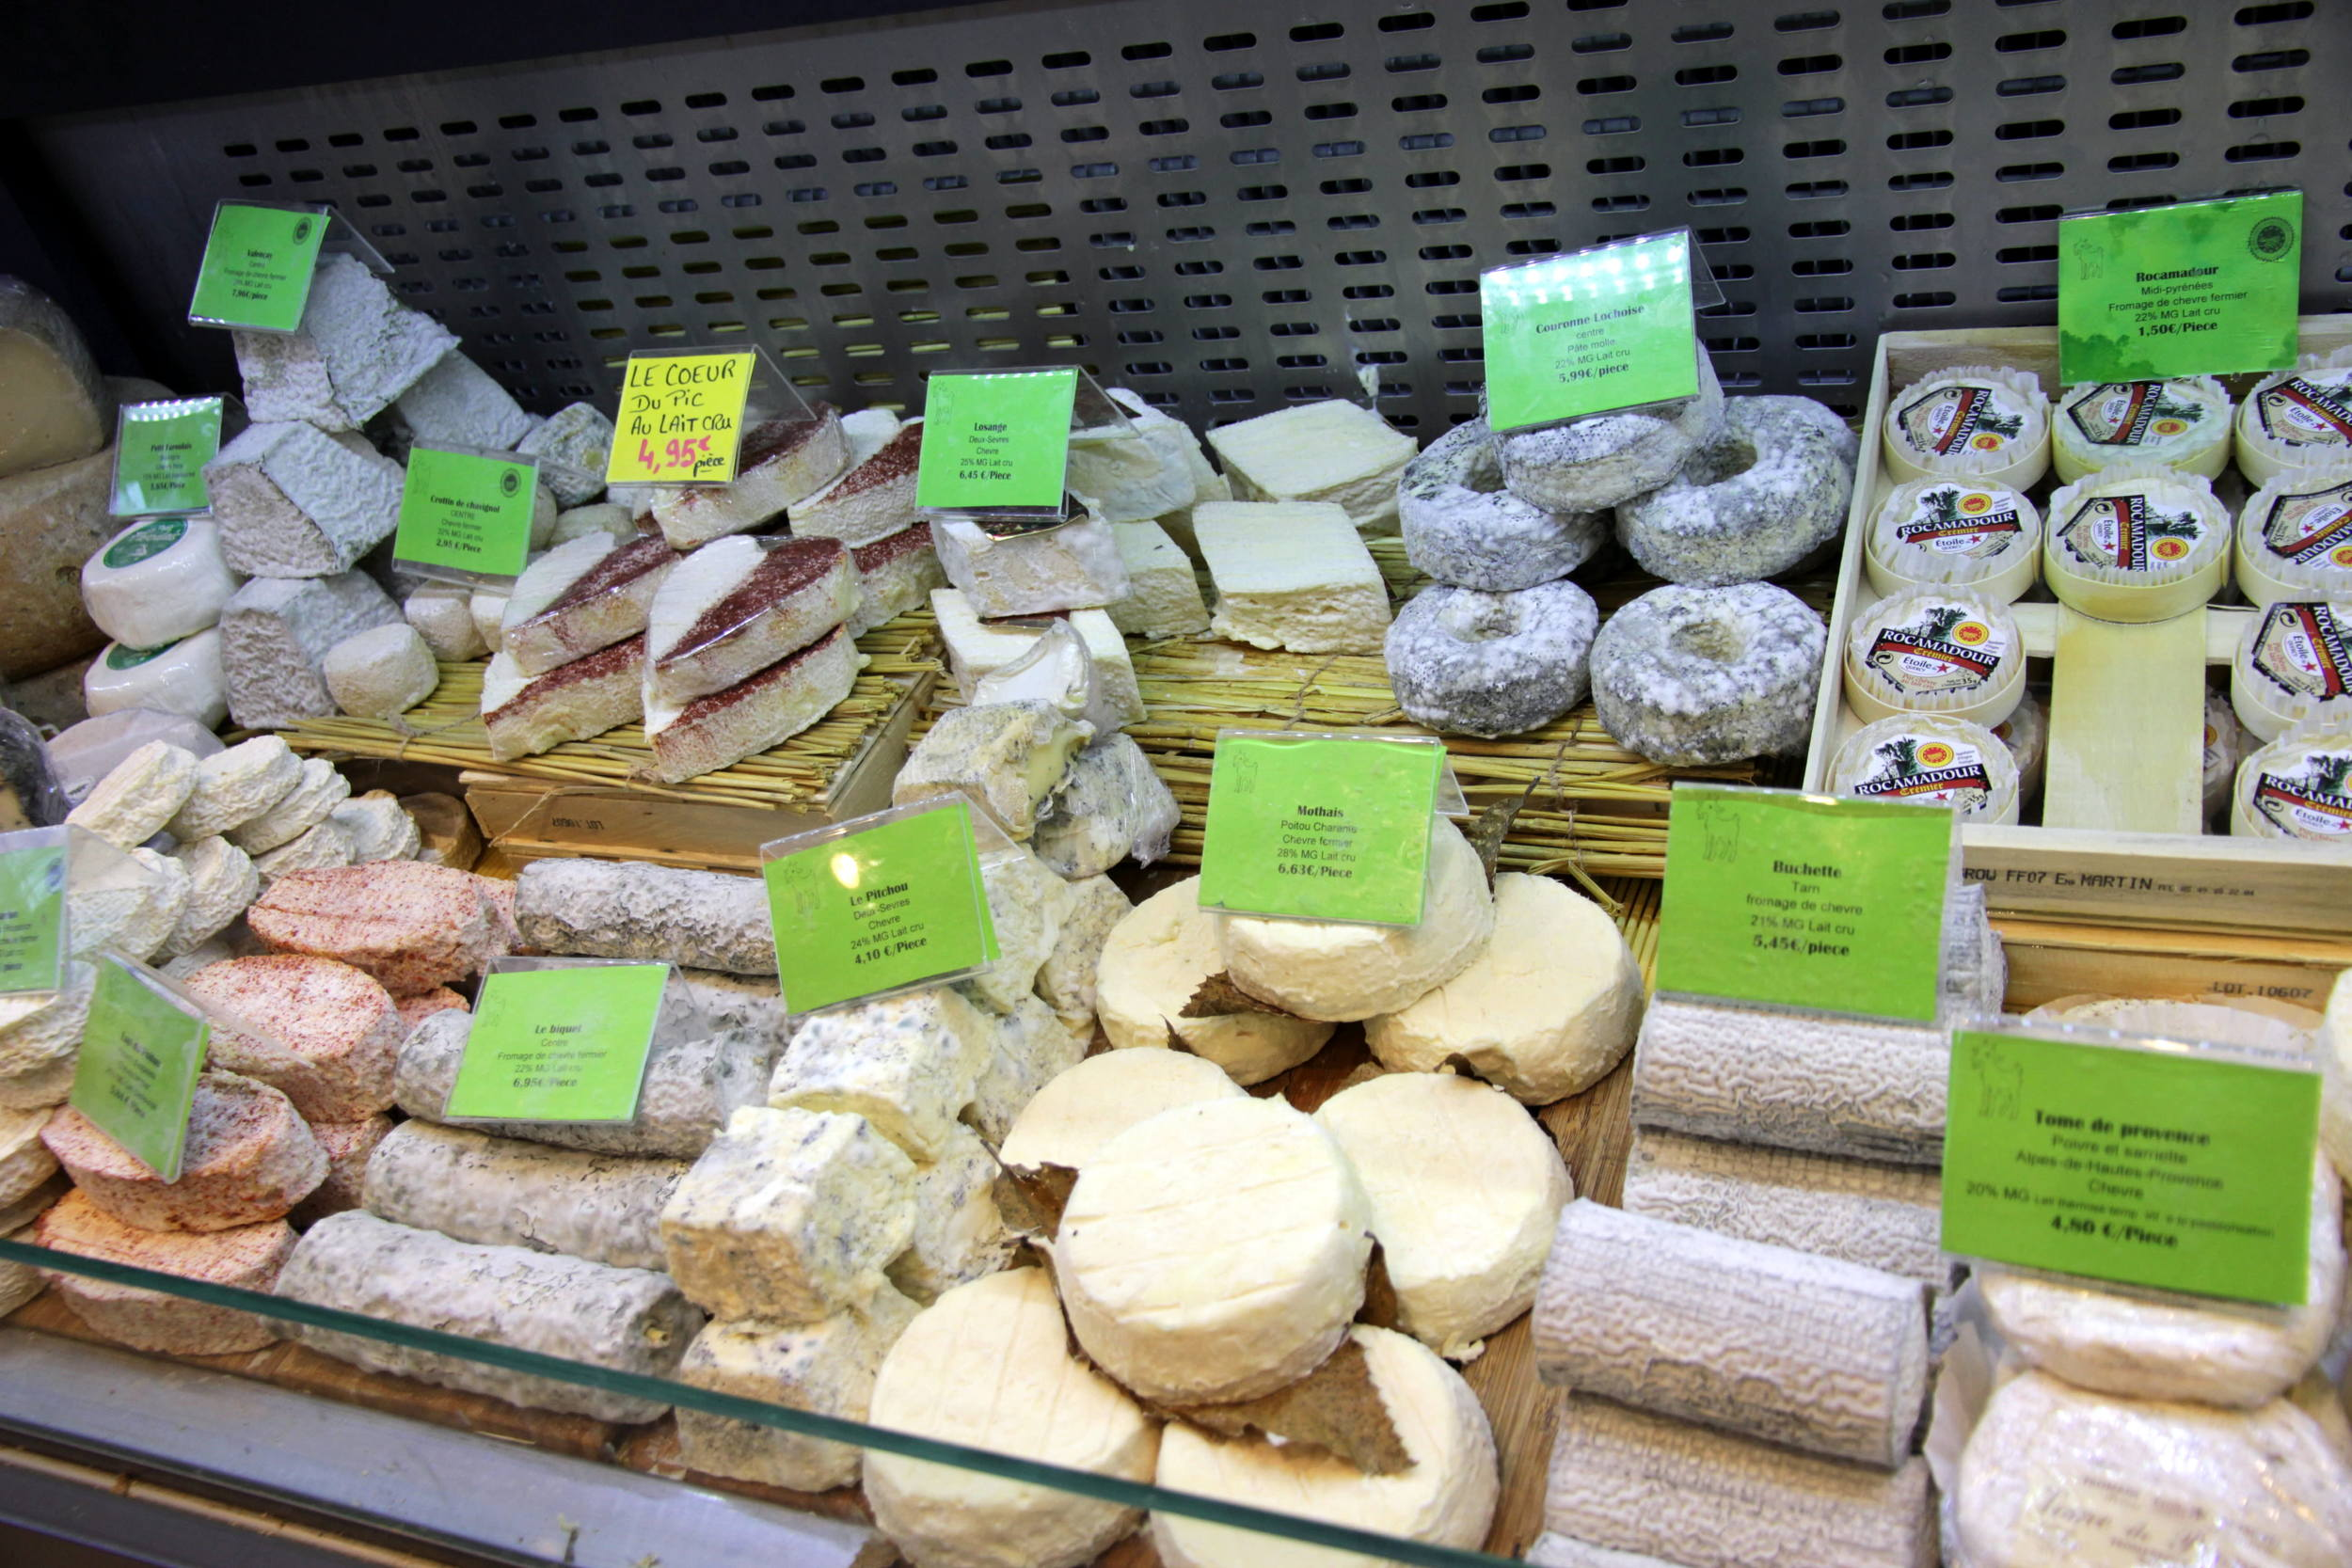 A range of chèvre (goat's cheese) to choose from.